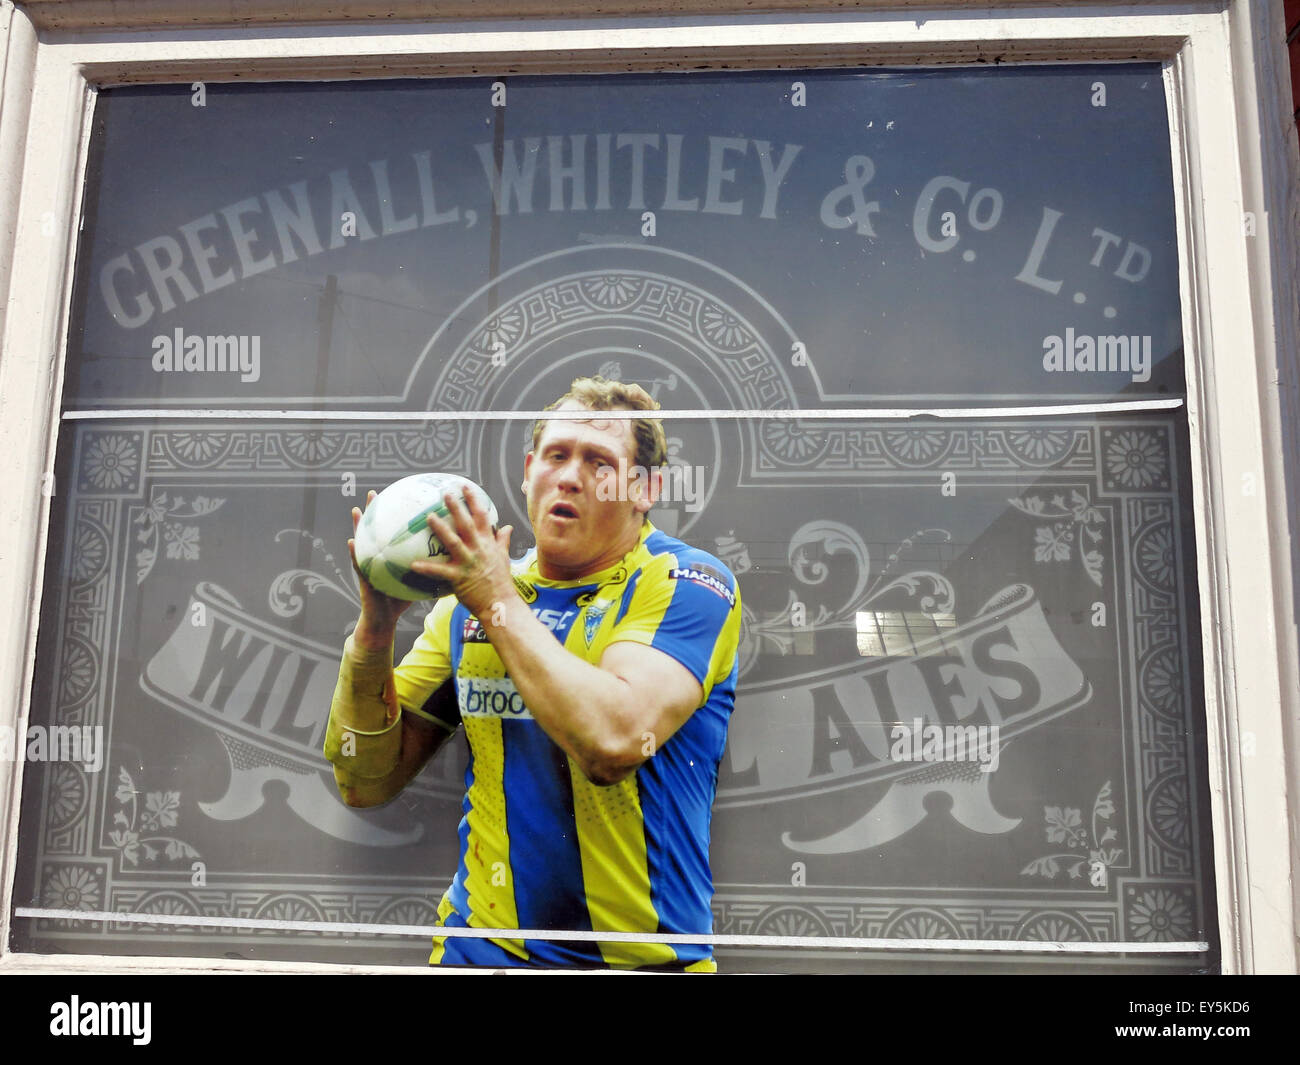 Greenall,Whitley,Wilderspool Ales,Rugby,Wire player in pub window - Stock Image